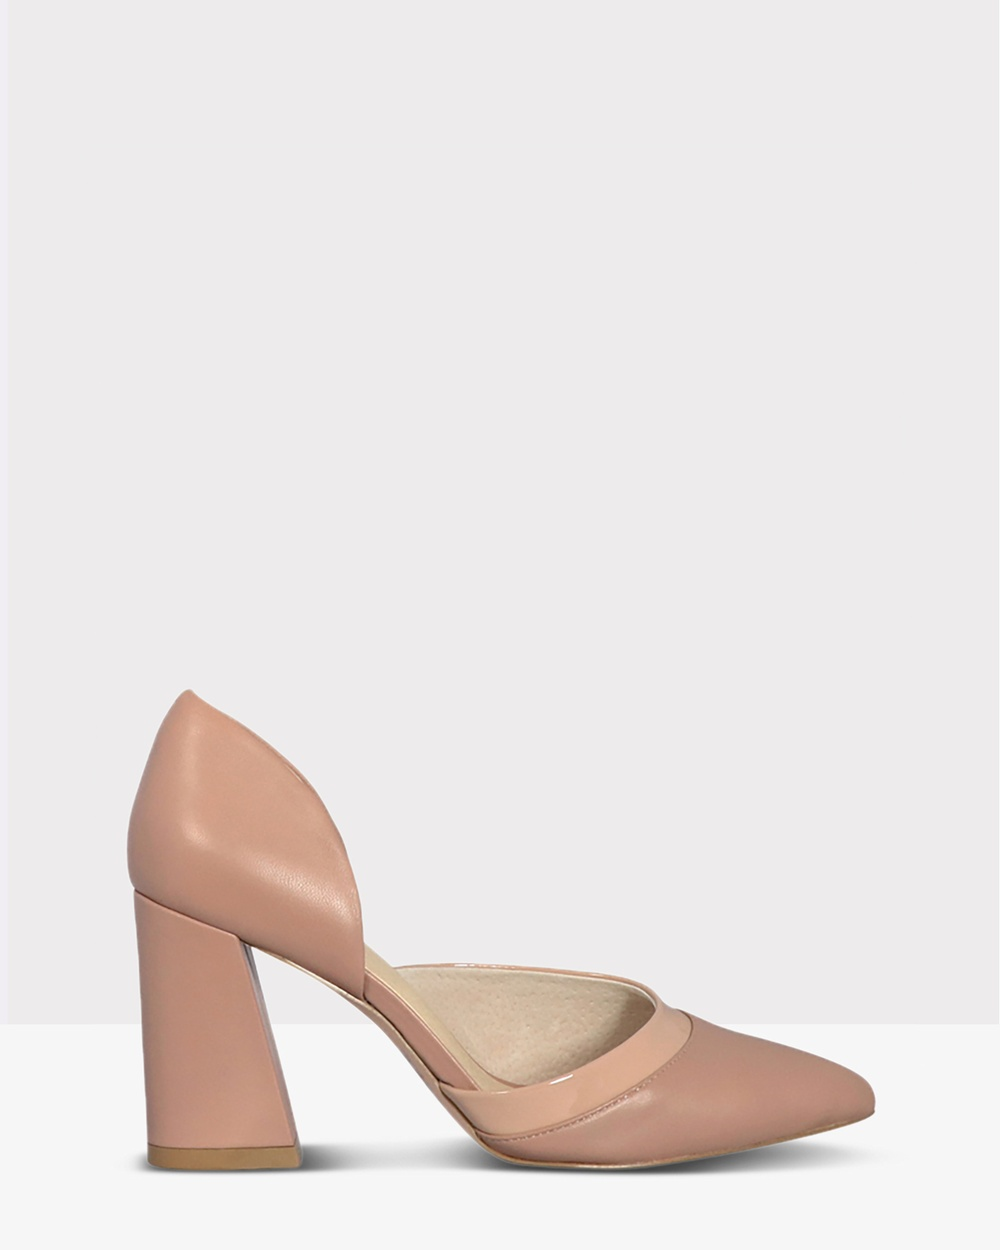 Nude Alexis All Pumps LATTE LEATHER Alexis